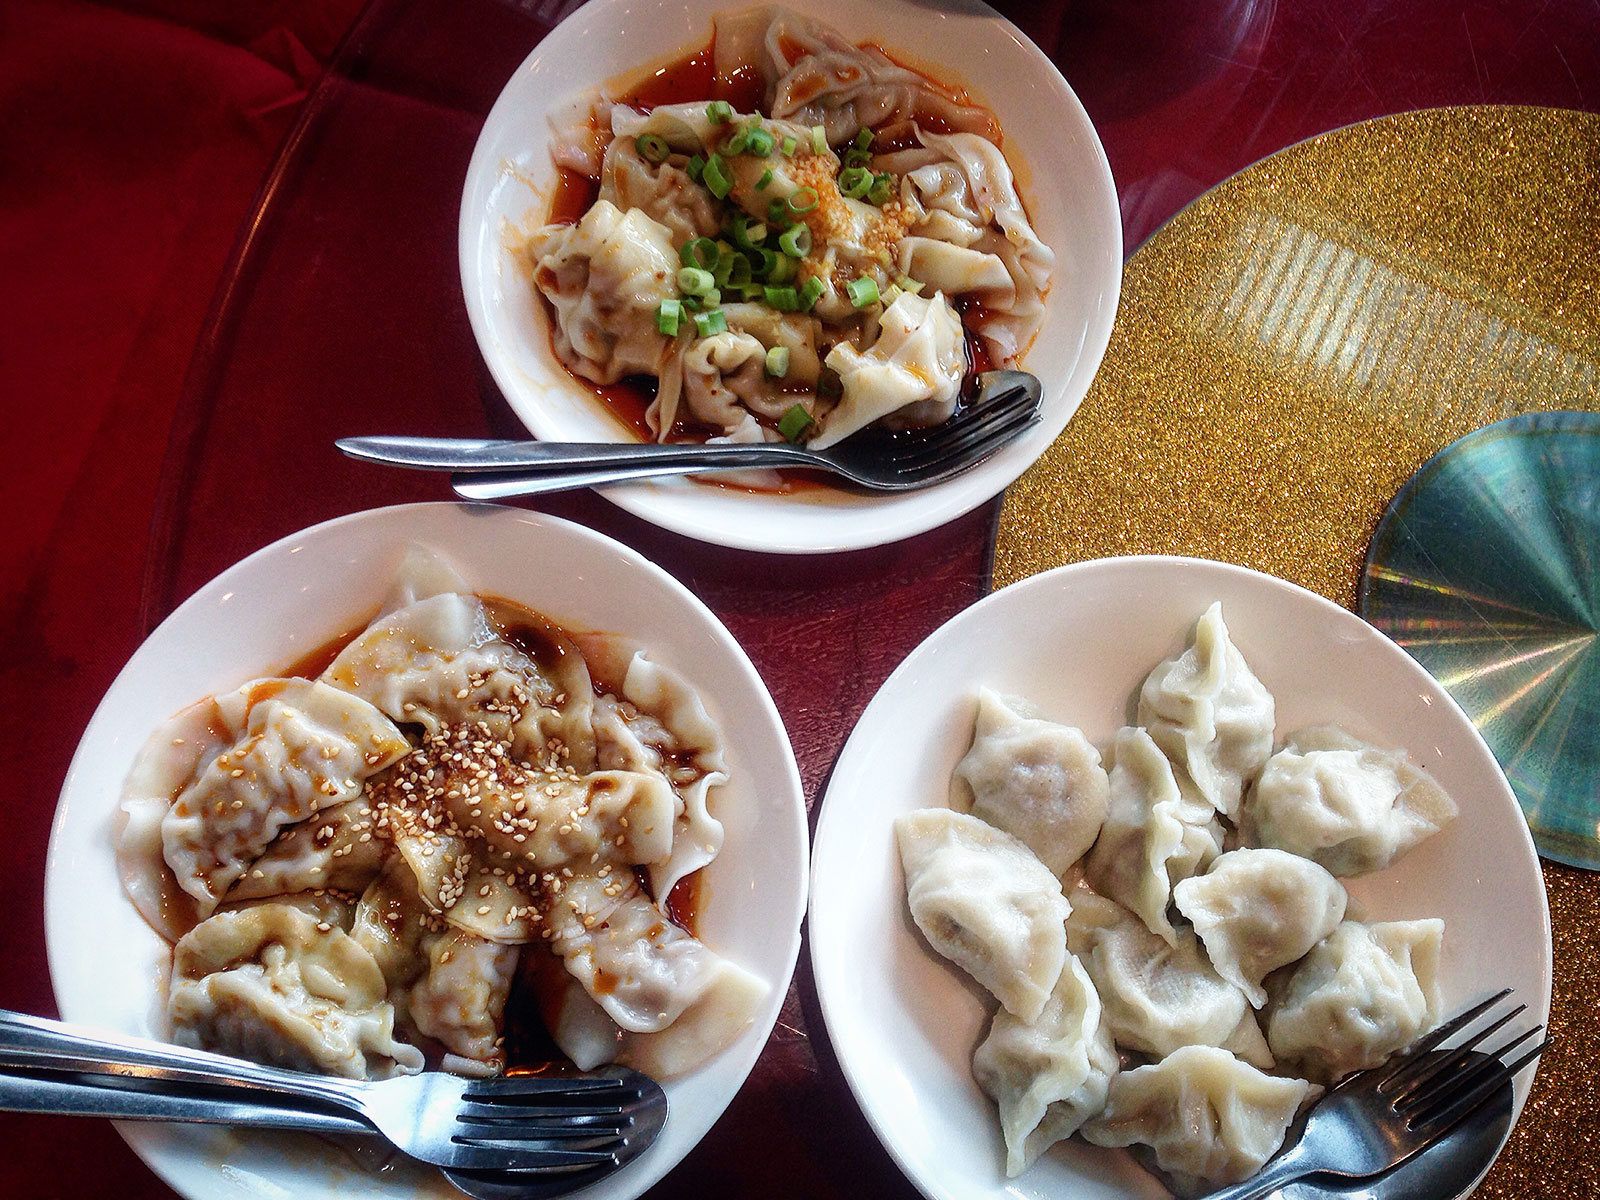 This Pacific Northwest Trail Isn't For Hiking, It's For Eating Delicious Dumplings